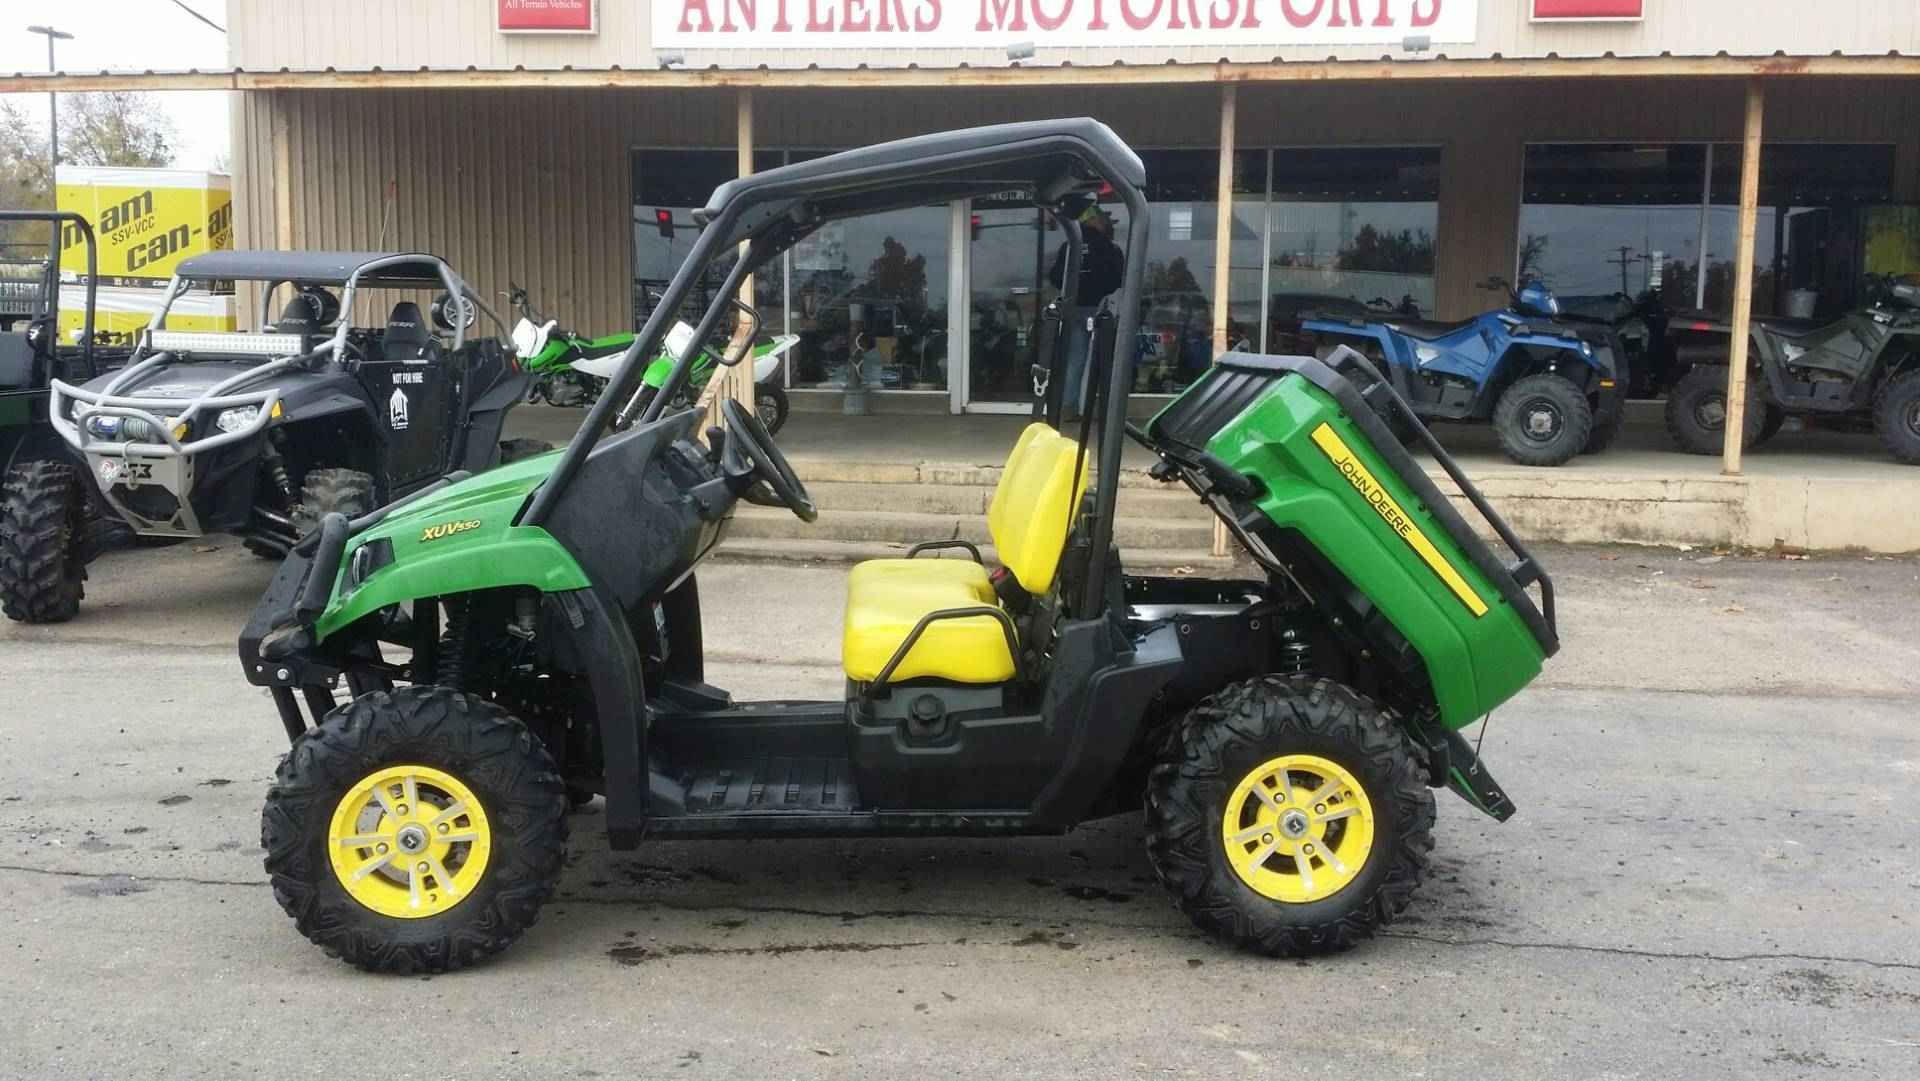 Used 2013 John Deere Gator™ XUV 550 ATVs For Sale in Oklahoma The